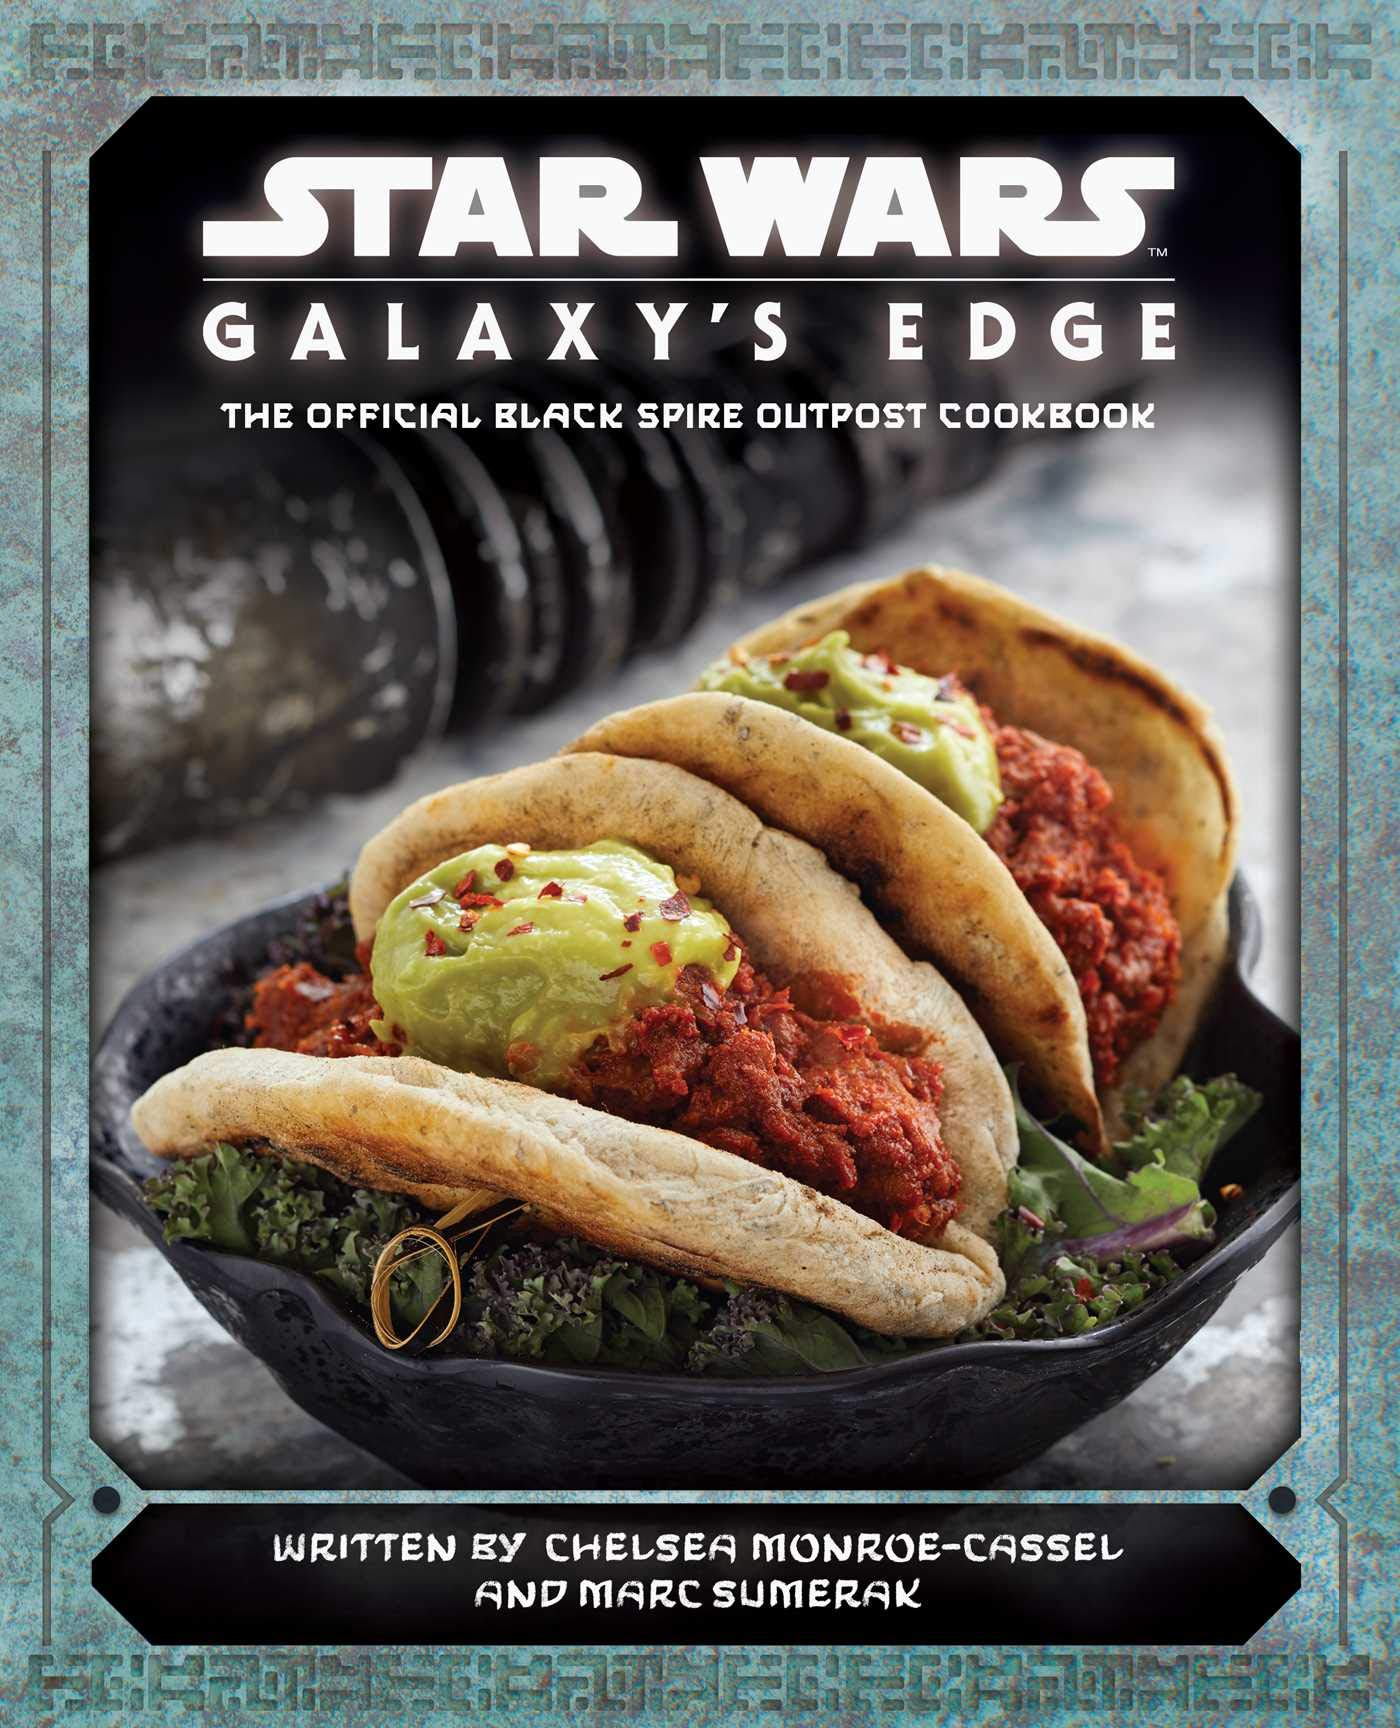 Star Wars Galaxys Edge The Official Black Spire Outpost Cookbook By Chelsea Monroe Cassel And Marc Sumerak Render